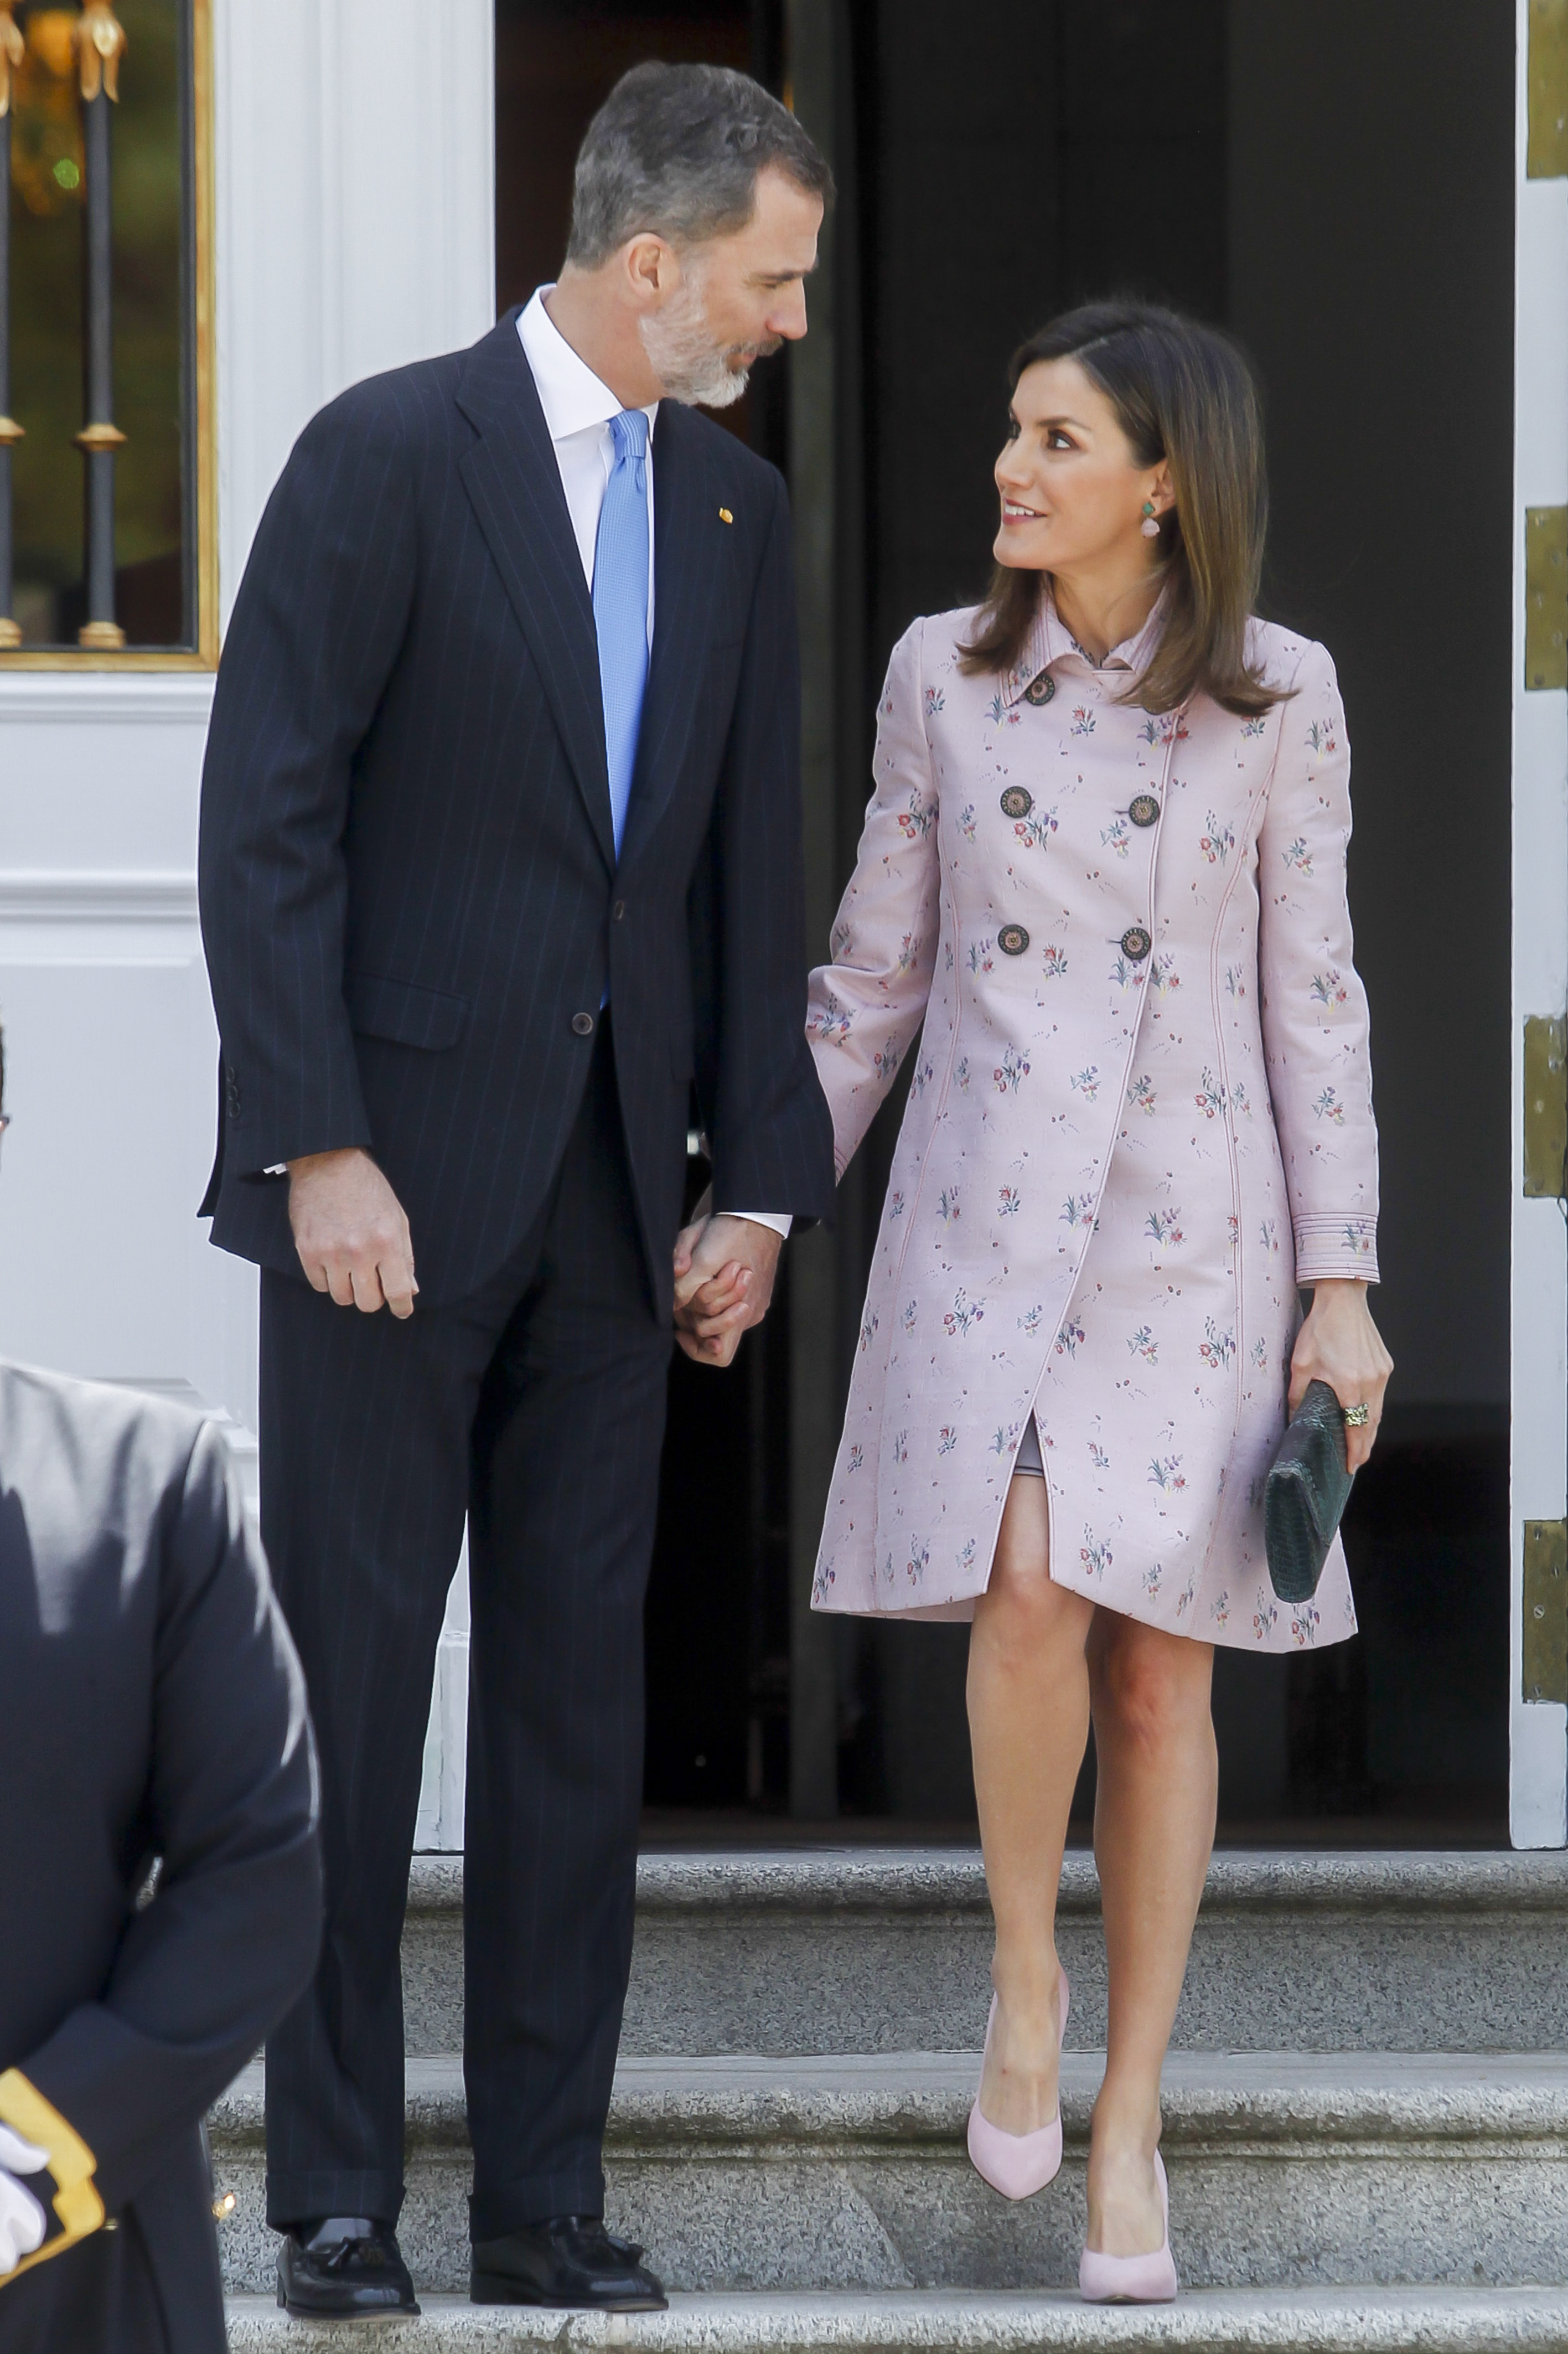 King Felipe and Queen Letizia attend a Lunch with Enrique Pena Nieto and Angelica Rivera at Zarzuela Palace in Madrid, Spain. <P> Pictured: Queen Letizia and King Felipe <B>Ref: SPL1686616  250418  </B><BR/> Picture by: Michael Murdock / Splash News<BR/> </P><P> <B>Splash News and Pictures</B><BR/> Los Angeles:310-821-2666<BR/> New York:212-619-2666<BR/> London:870-934-2666<BR/> <span id=